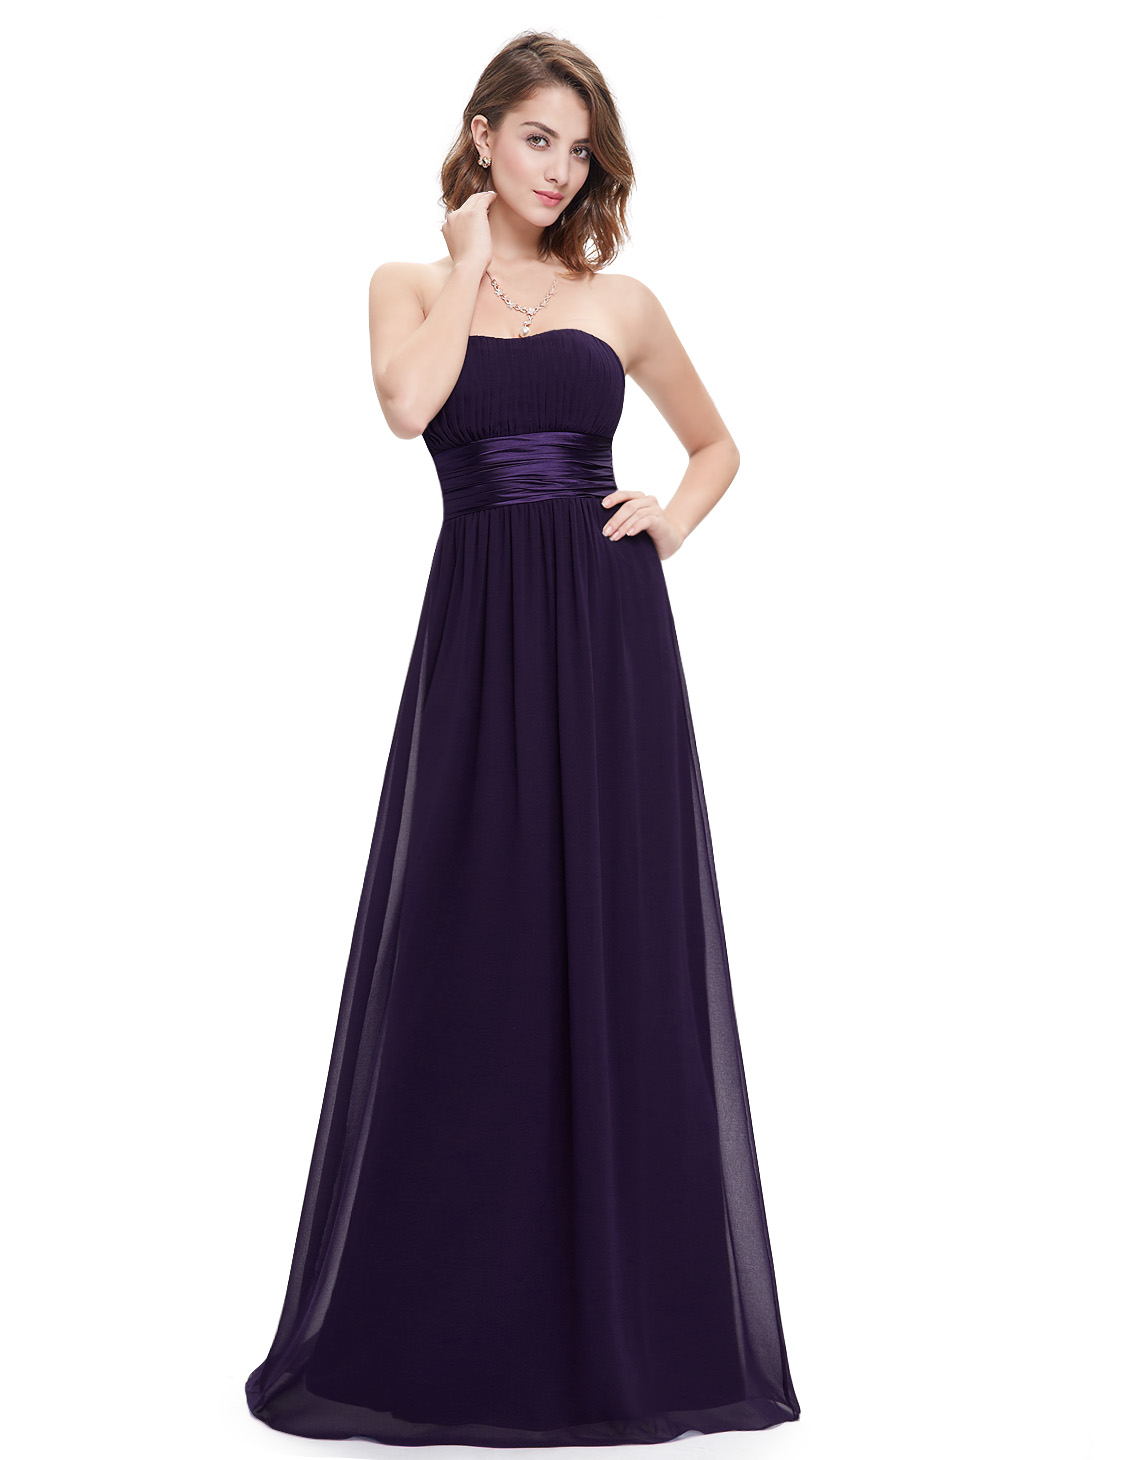 Strapless wedding ball long bridesmaid dress ball party for Ebay wedding bridesmaid dresses